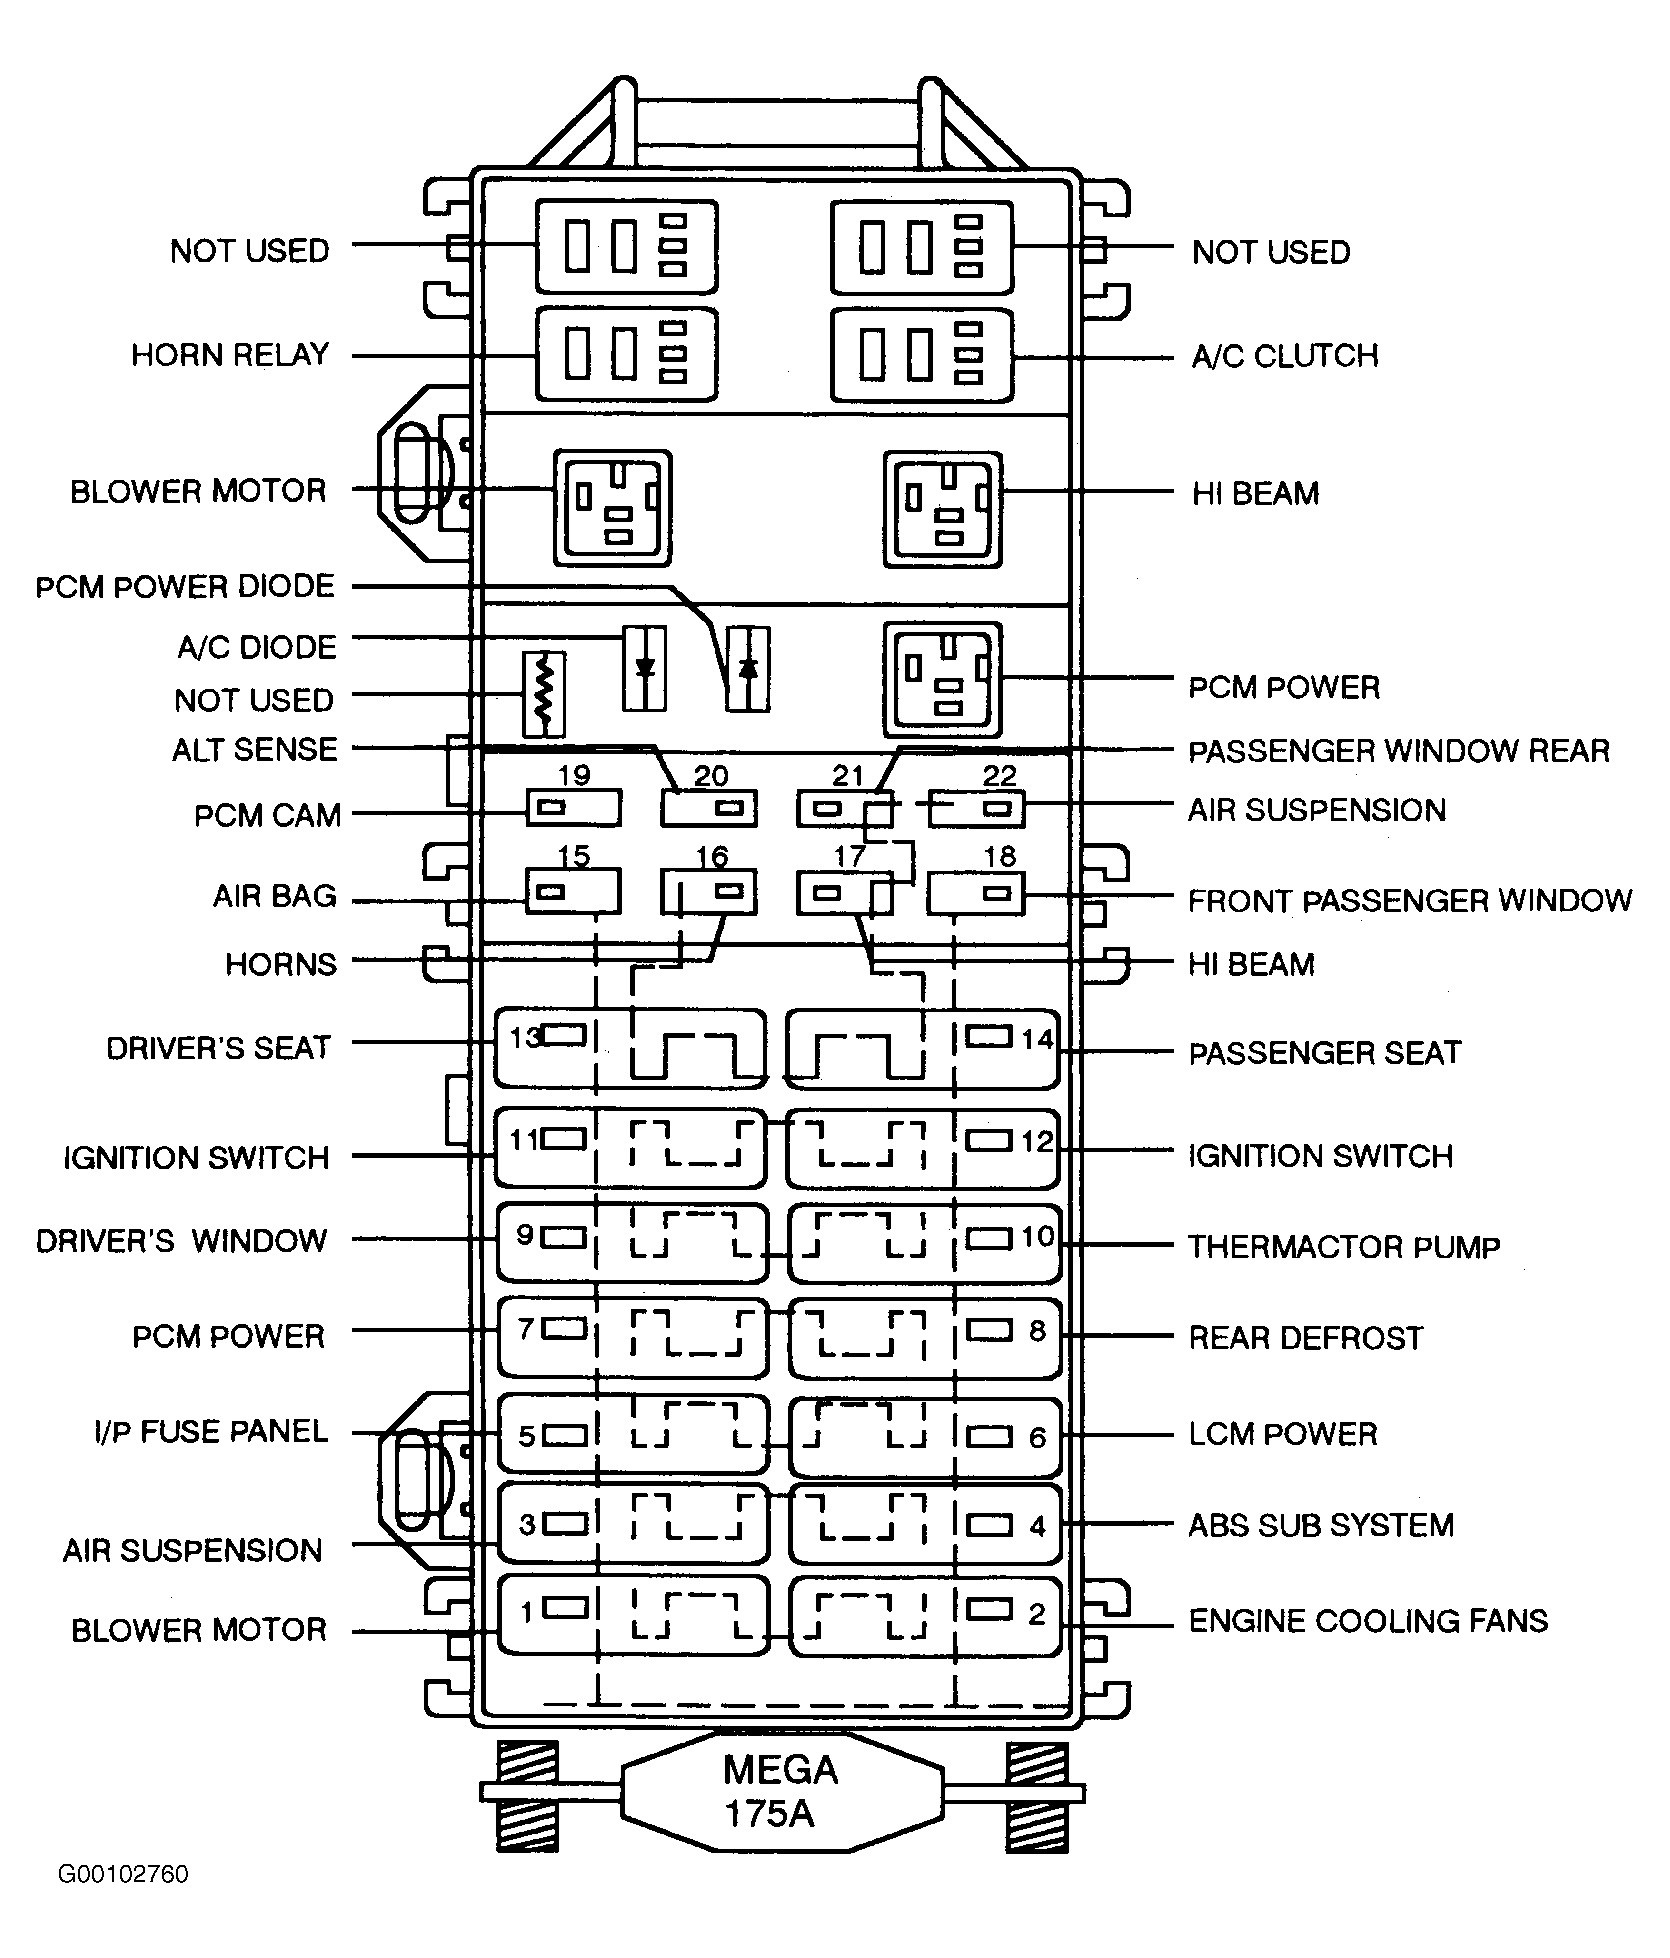 2000 lincoln navigator fuse diagram online wiring diagram